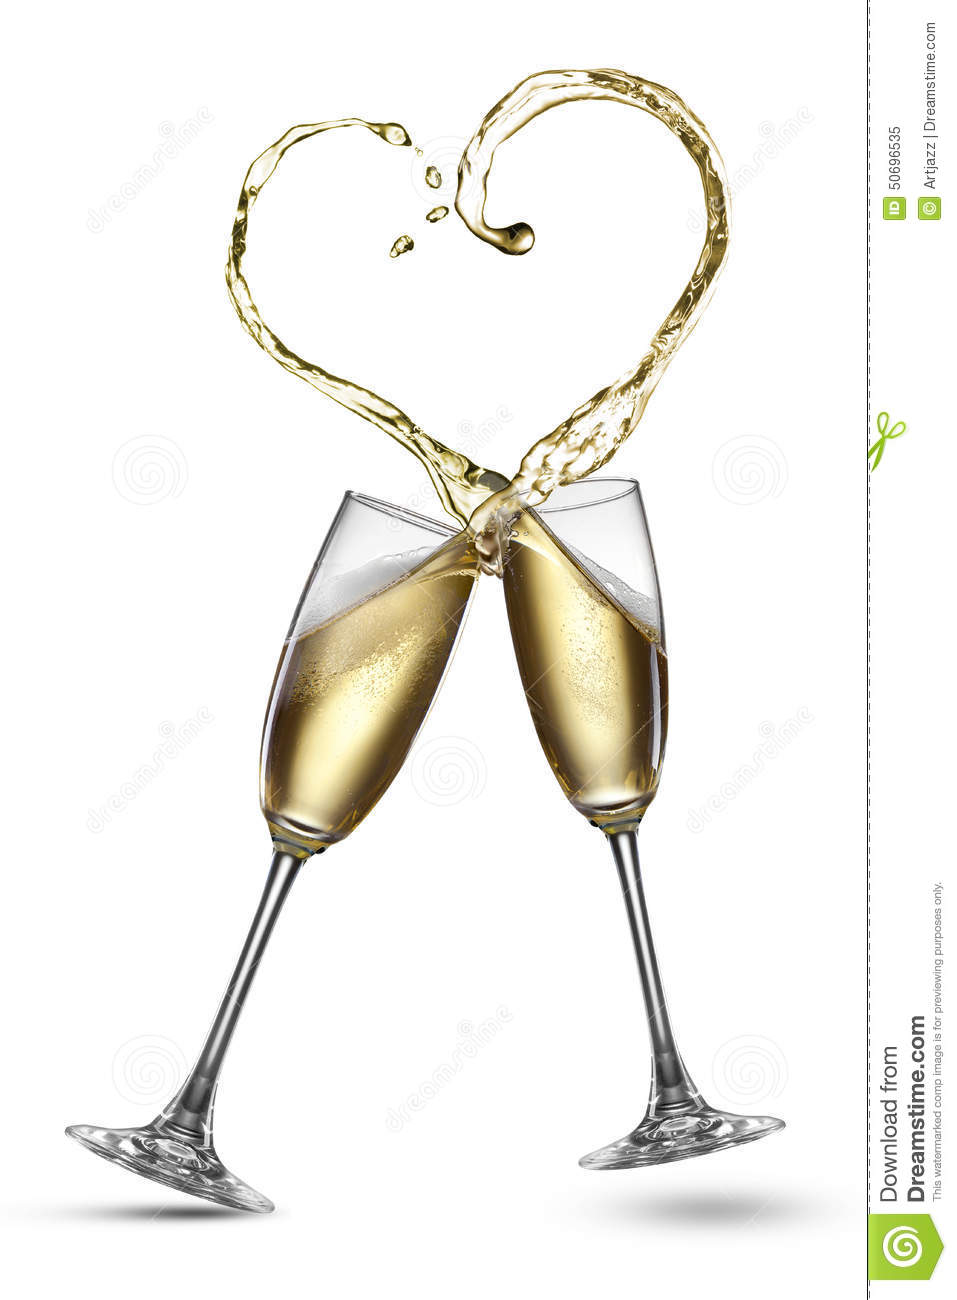 champagne splash in shape of heart isolated stock photo image 50696535. Black Bedroom Furniture Sets. Home Design Ideas